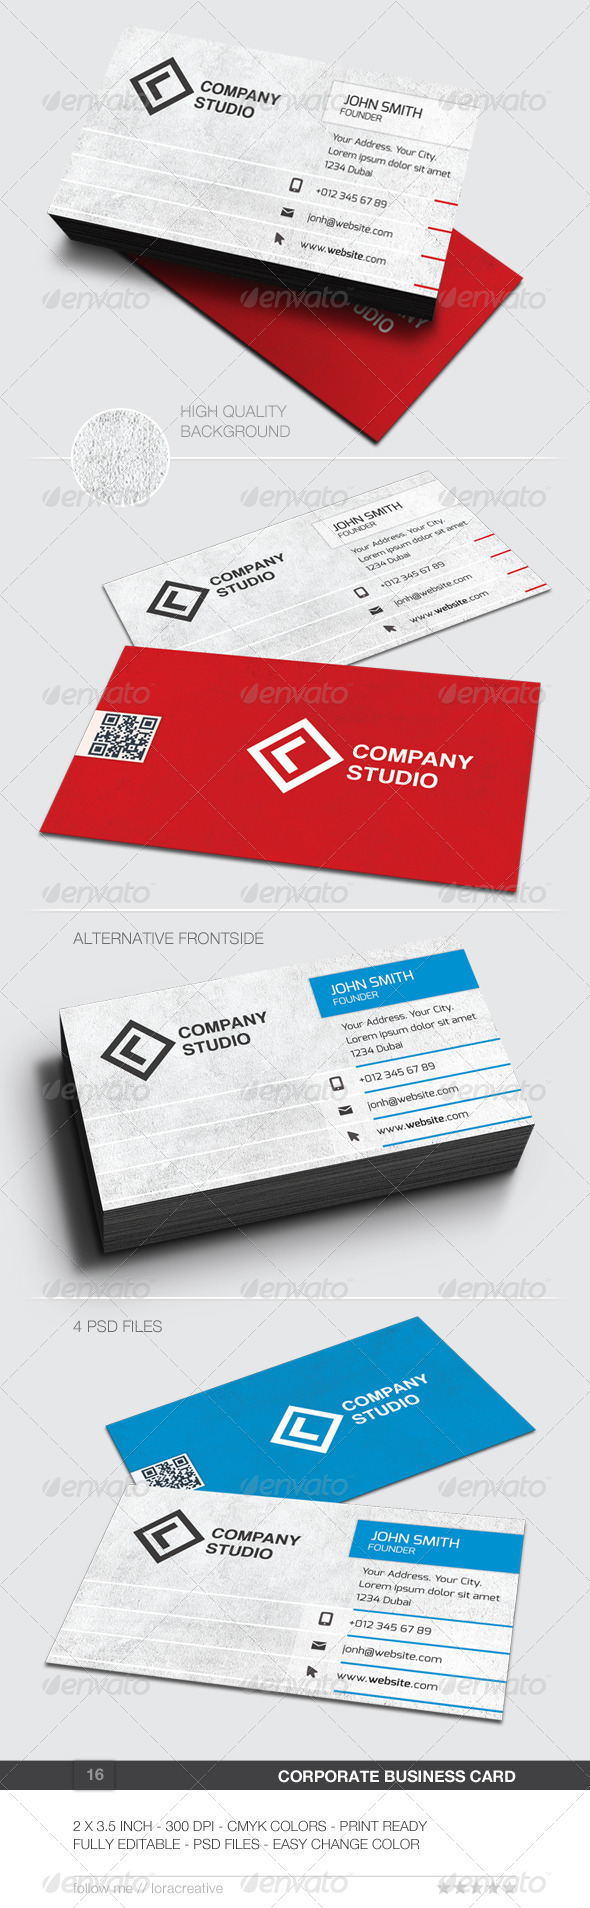 Corporate Business Card - 16 - Corporate Business Cards